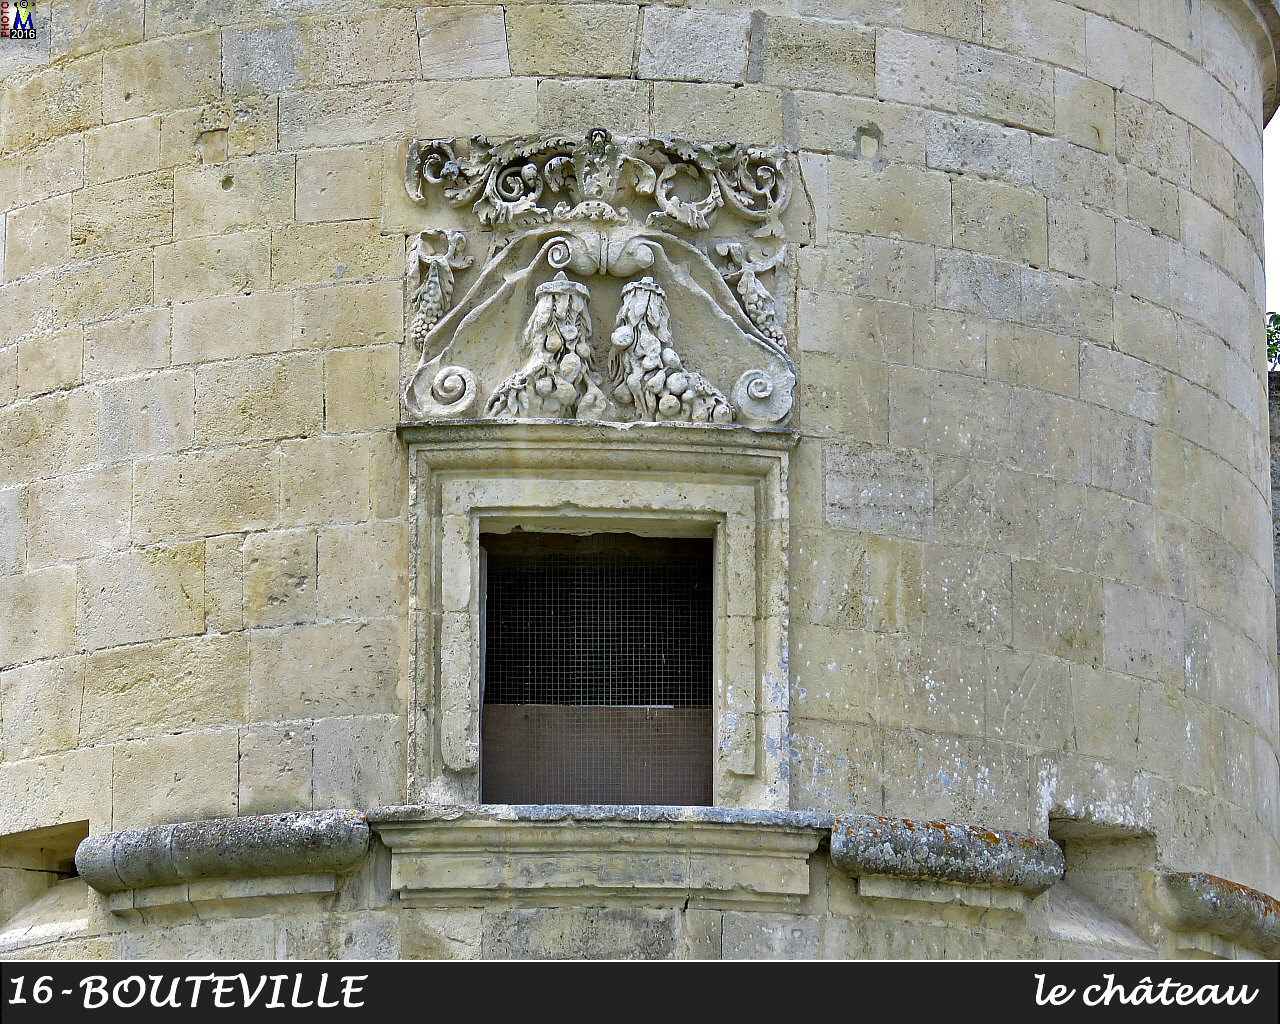 16BOUTEVILLE_chateau_1016.jpg